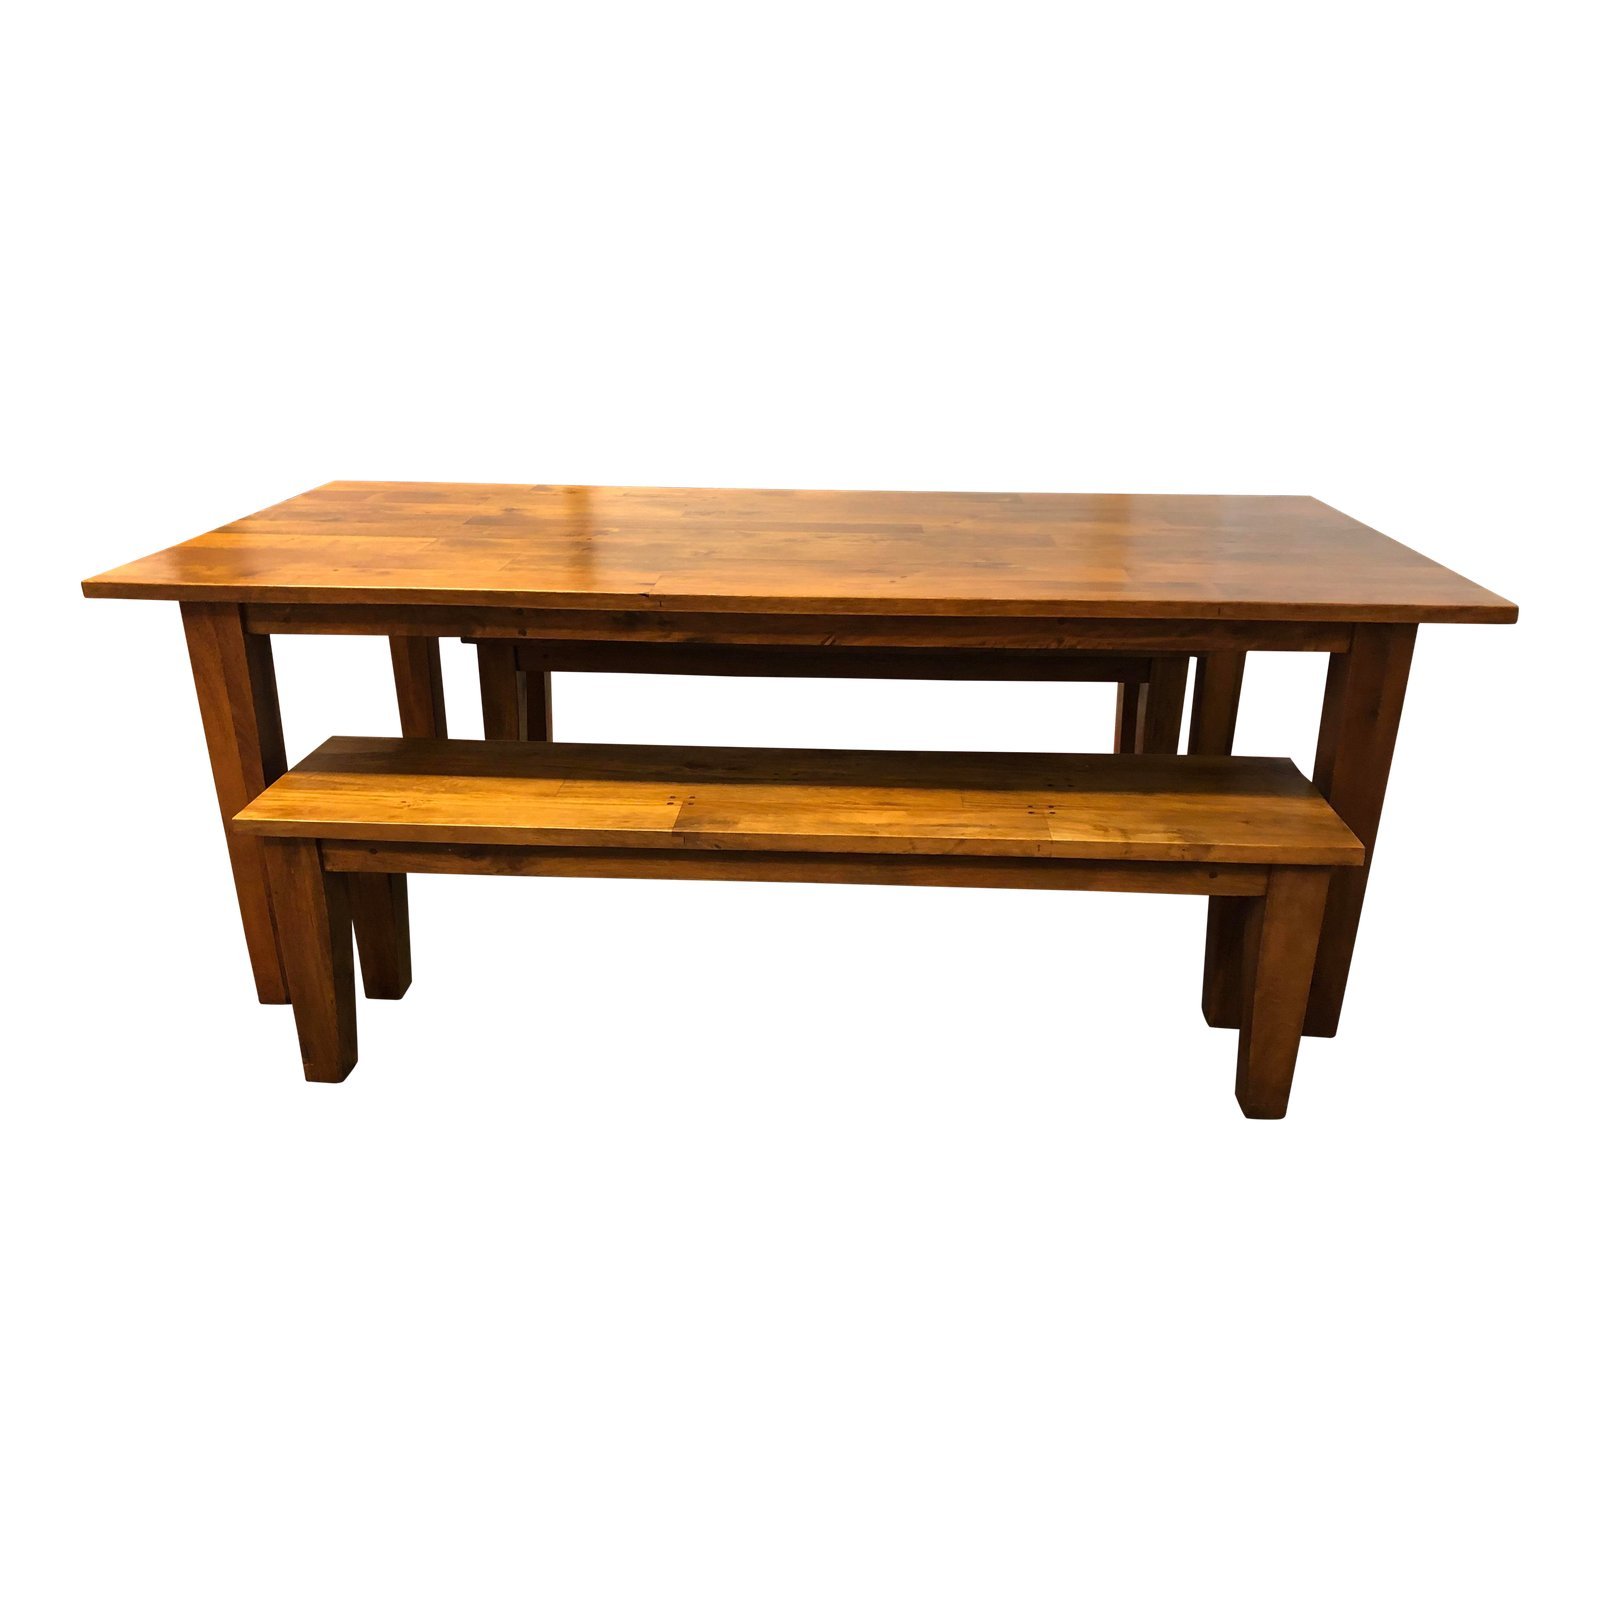 Crate Barrel Basque Honey Dining Table Two Benches Original Price 1 500 Sold